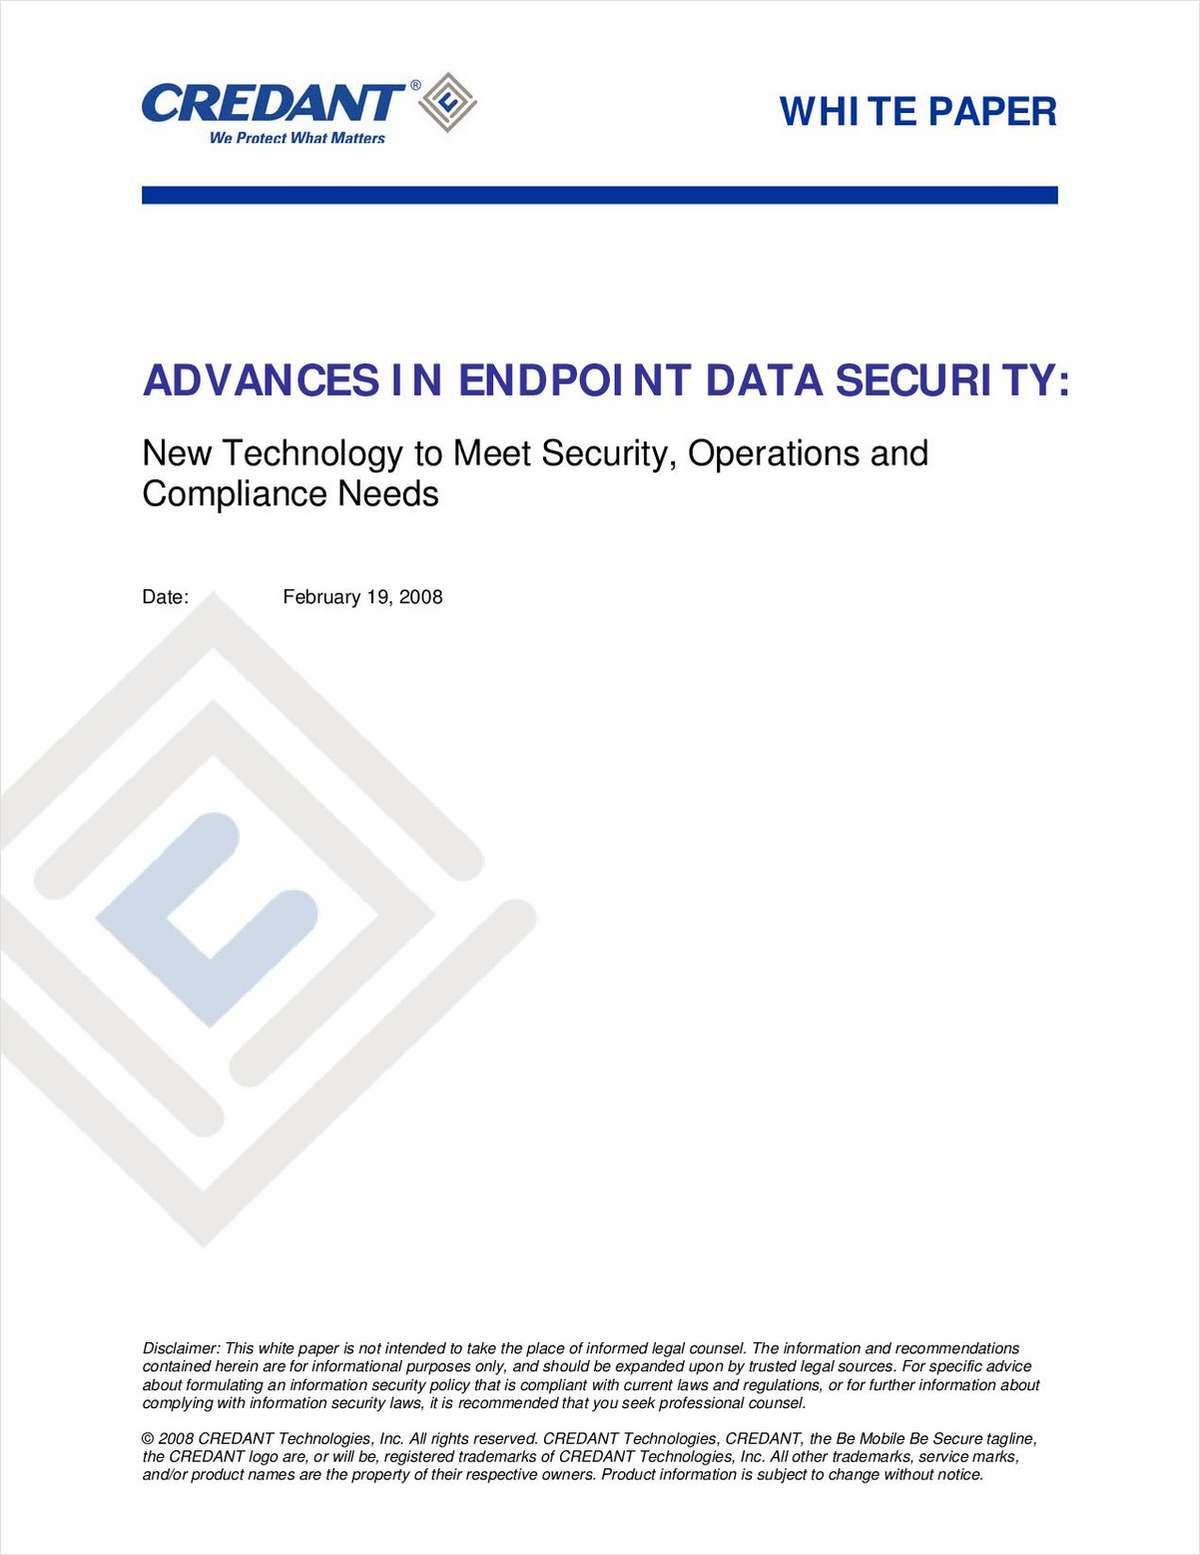 Advances in Endpoint Data Security: New Technology to Meet Security, Operations and Compliance Needs